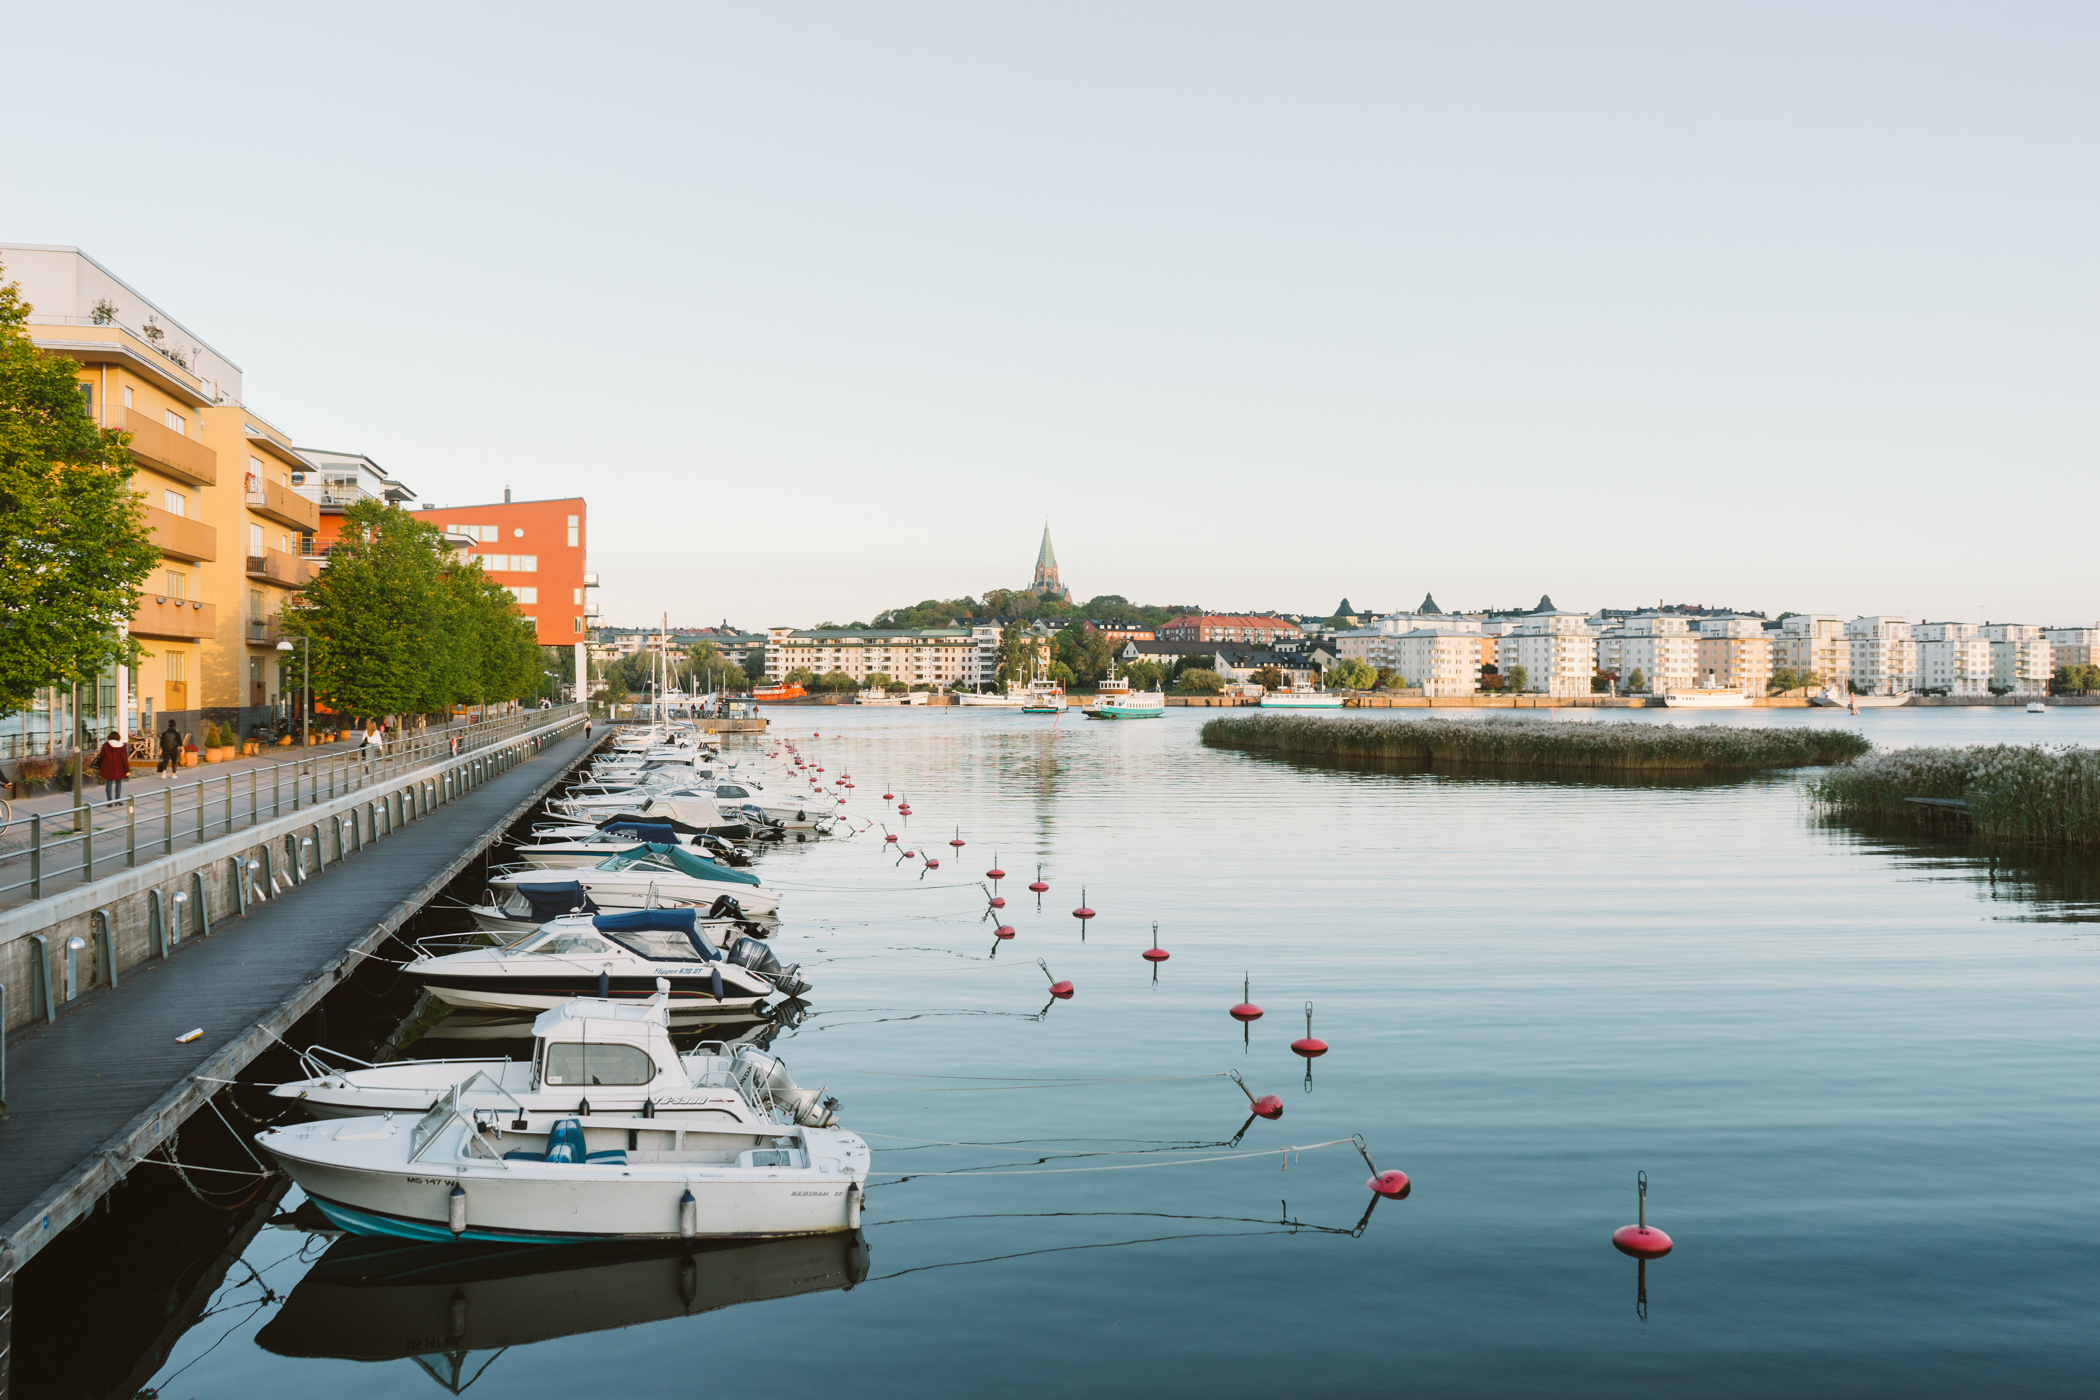 Stockholm, Sweden by Jessie May